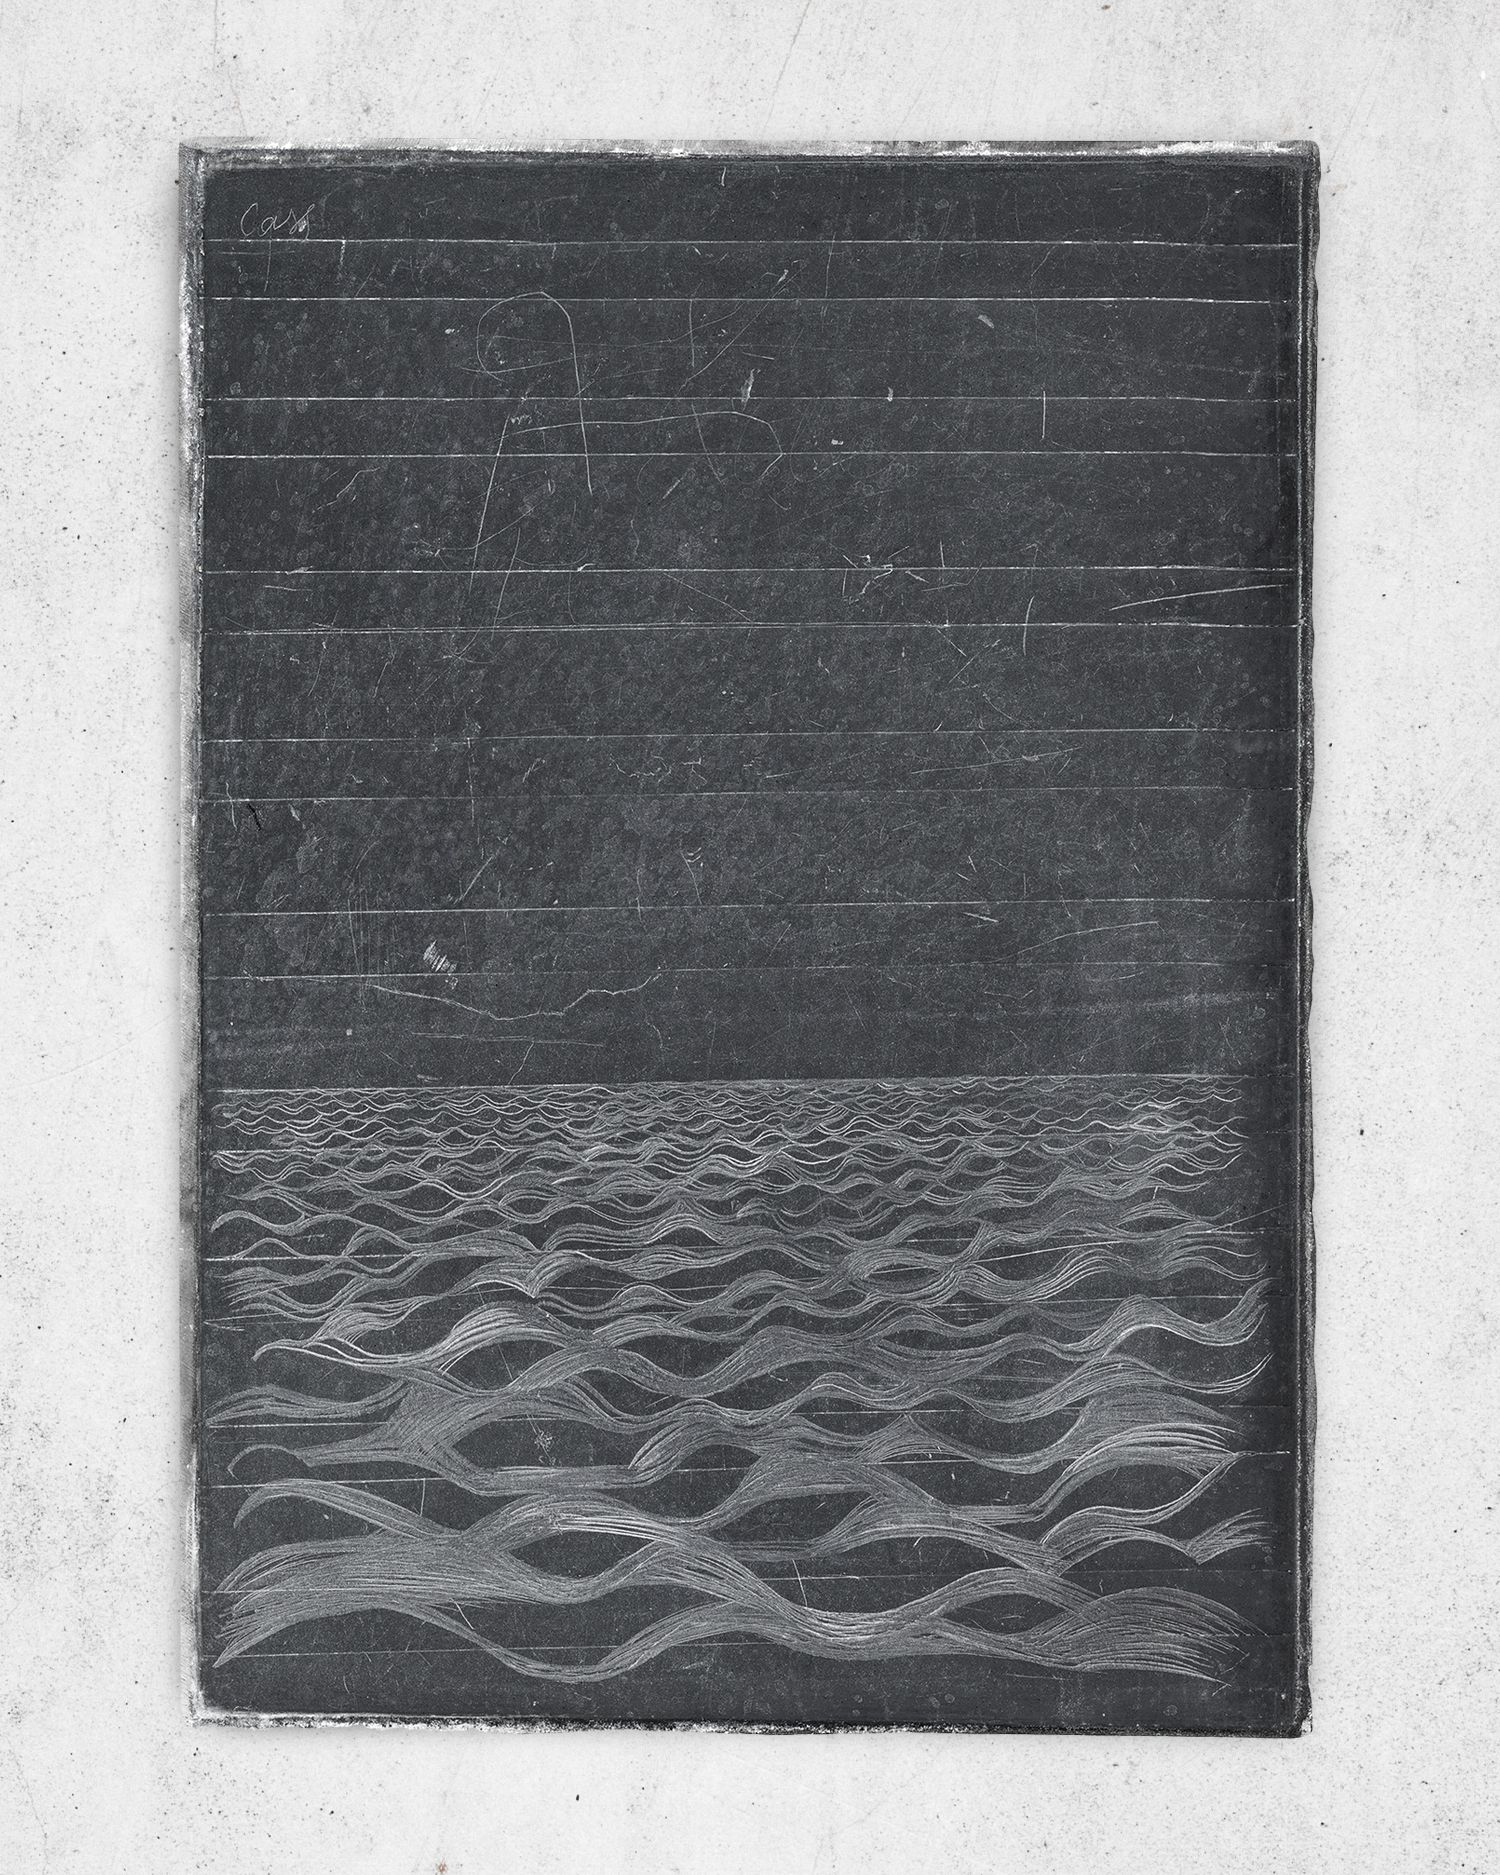 James Scott Elliot's Slate  2011 (reworked 2018) The artist's Grandfather's school slate, etched